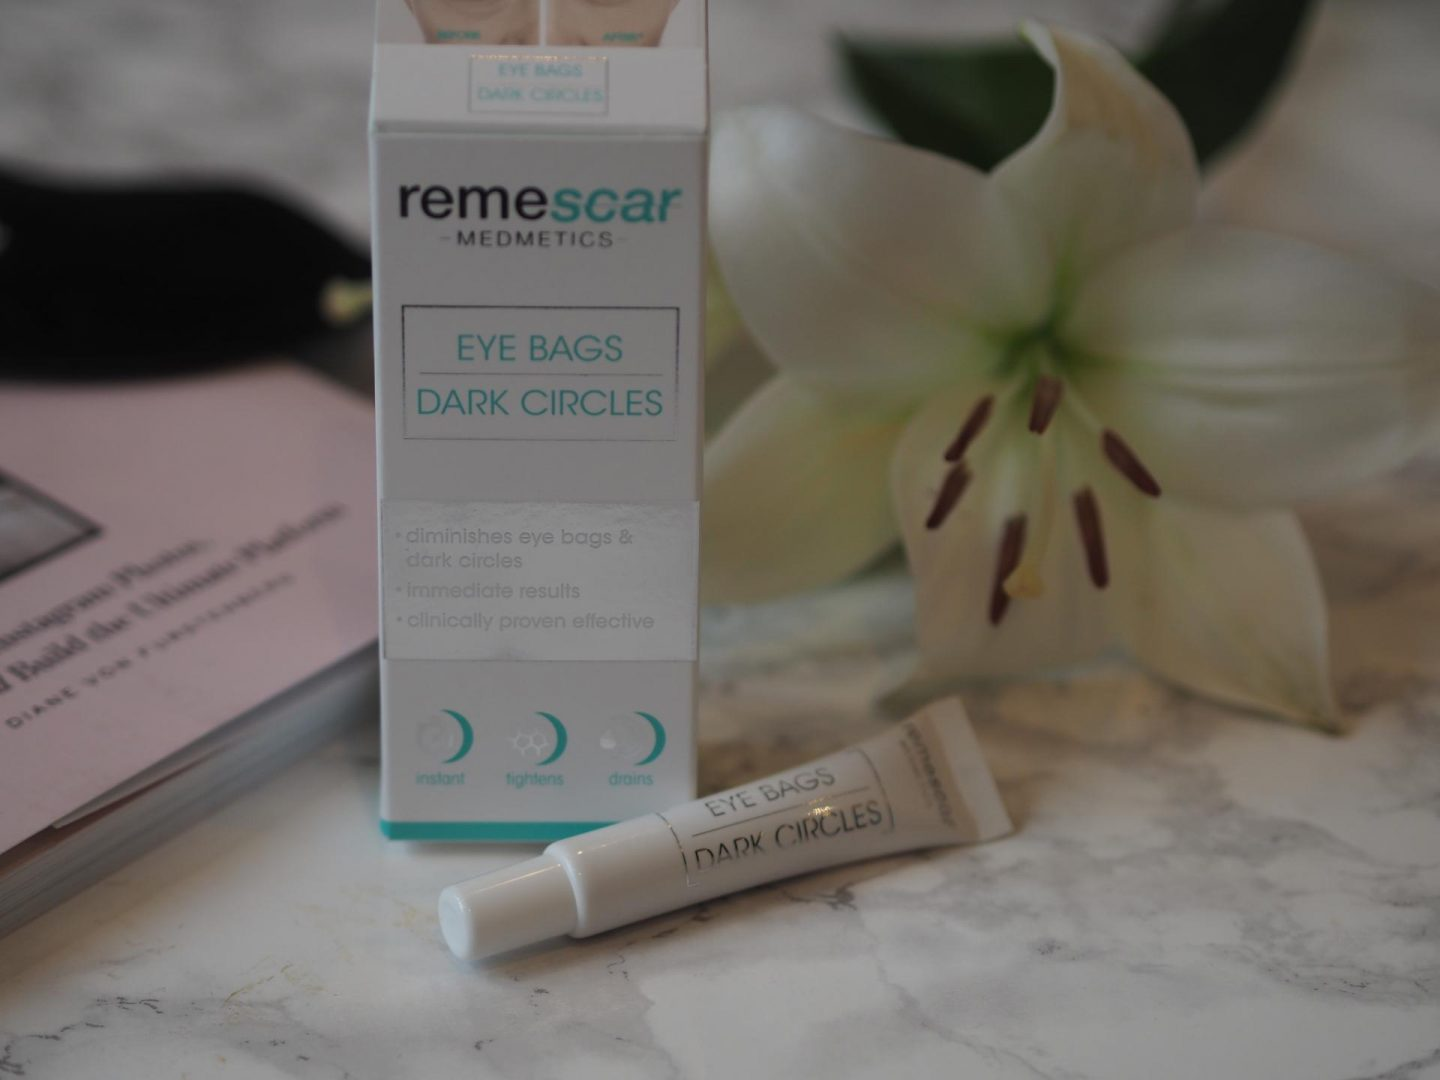 Remescar - Product: Eye Bags and Dark Circles Serum